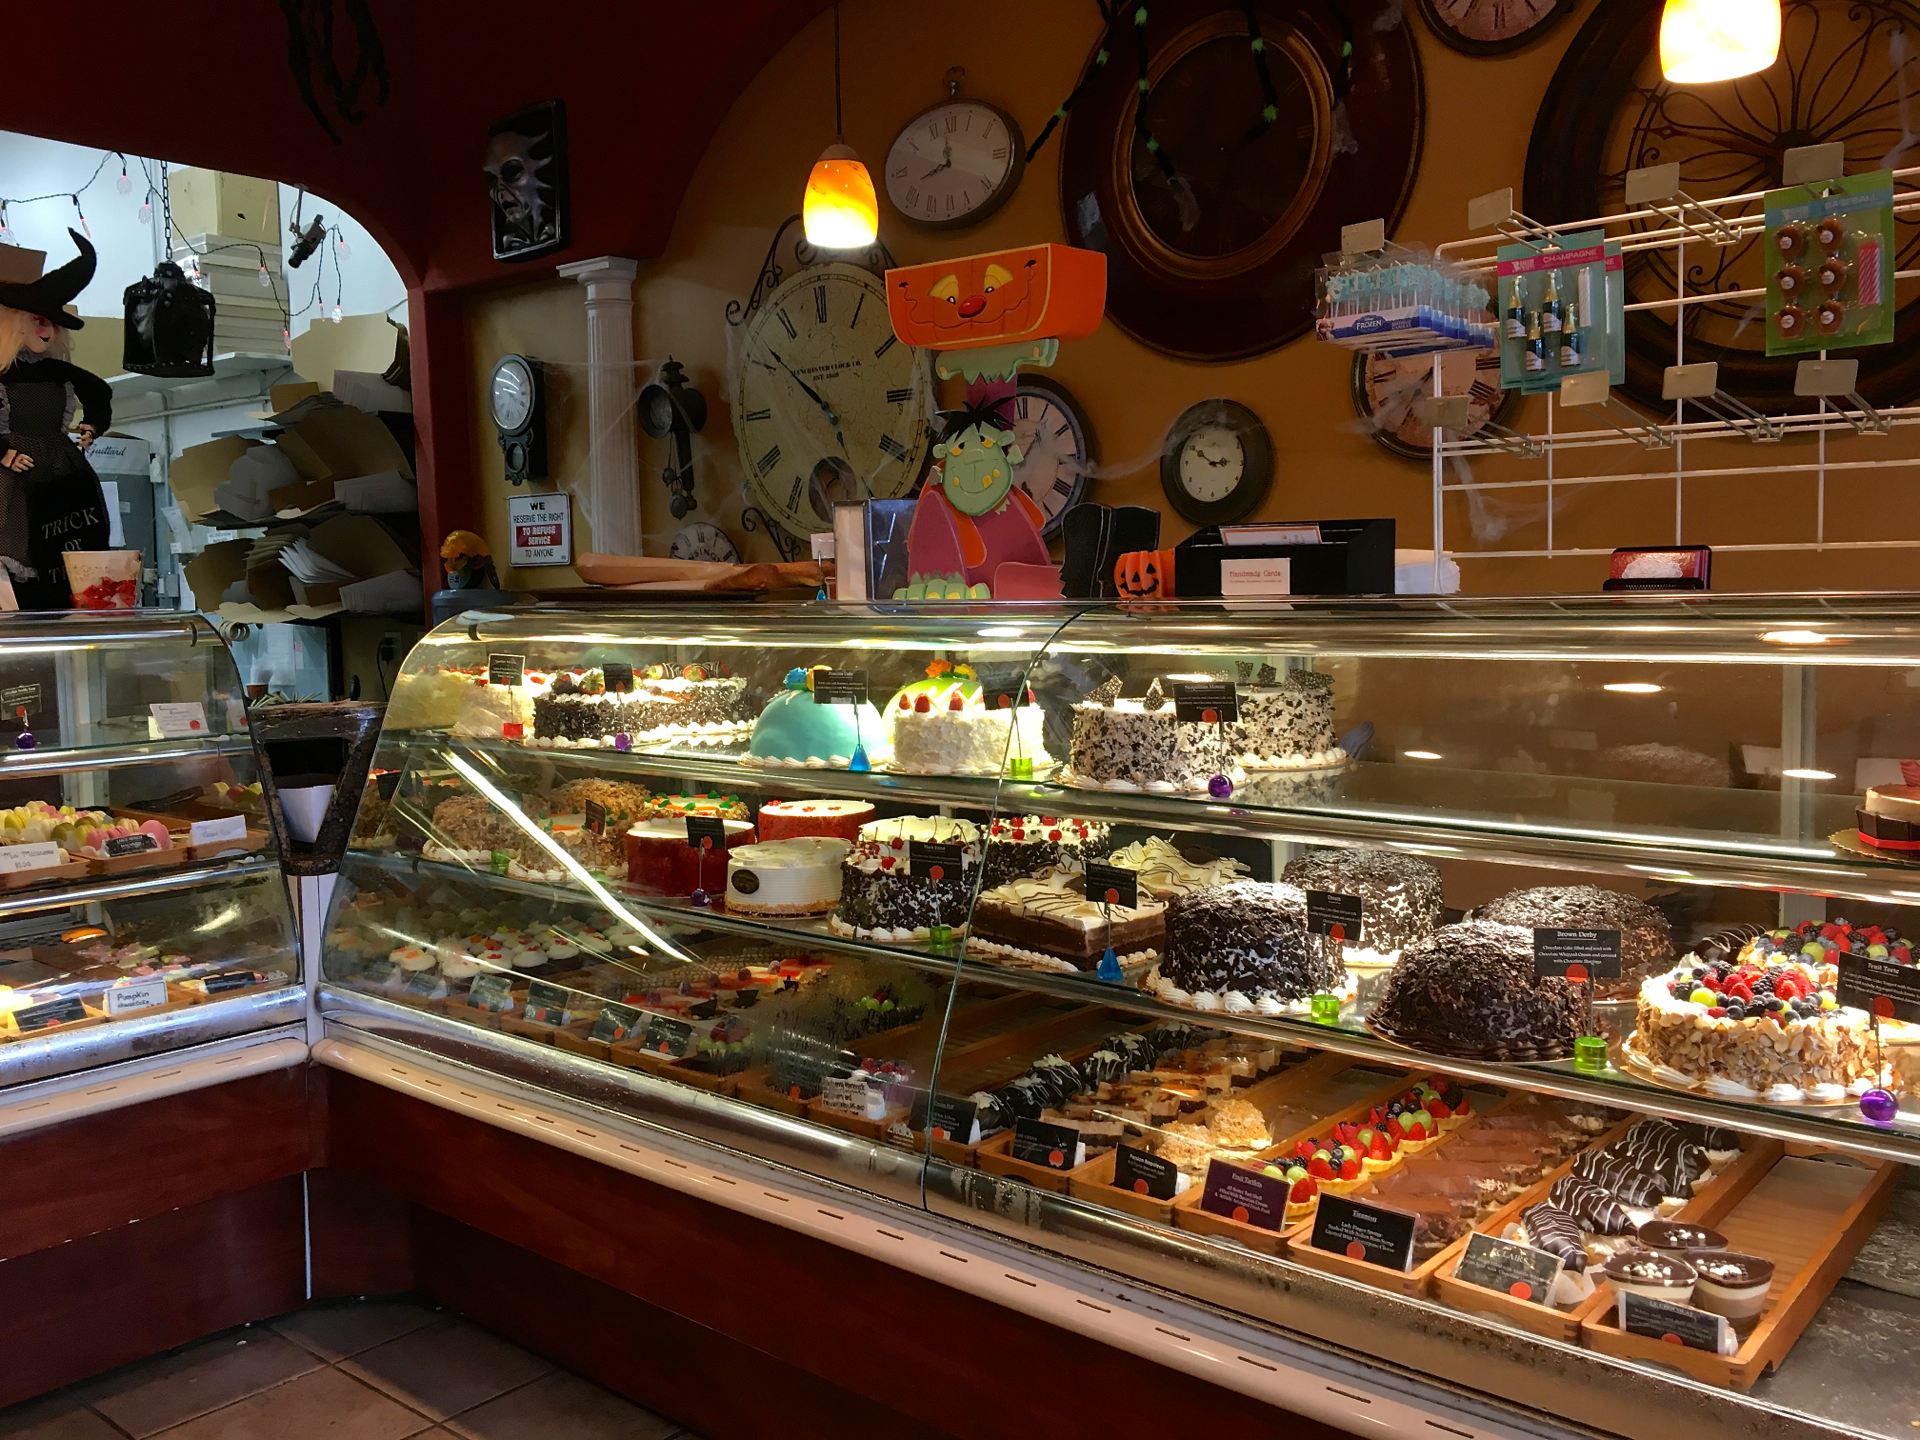 The pastry case inside La Patisserie Bakery in Cupertino.